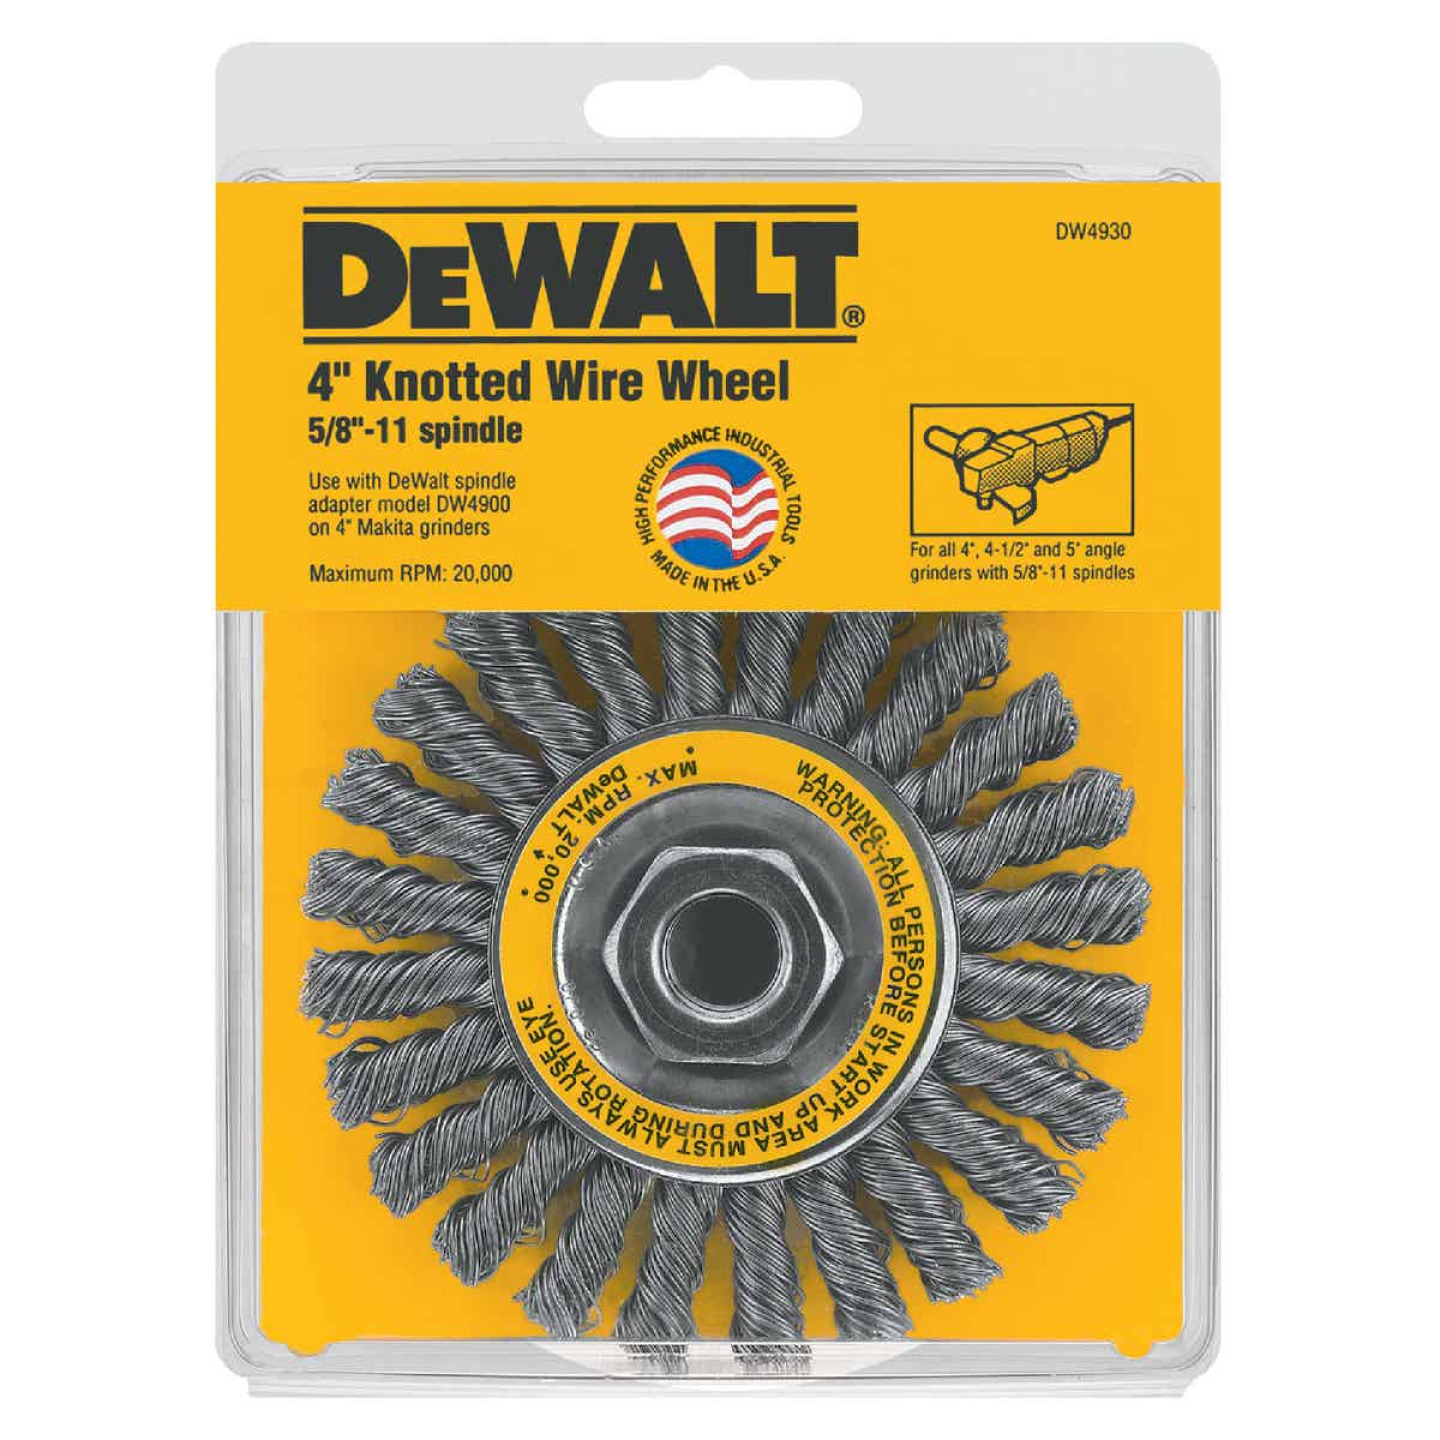 DeWalt 4 In. Cable Twist 0.020 In. Angle Grinder Wire Wheel Image 2